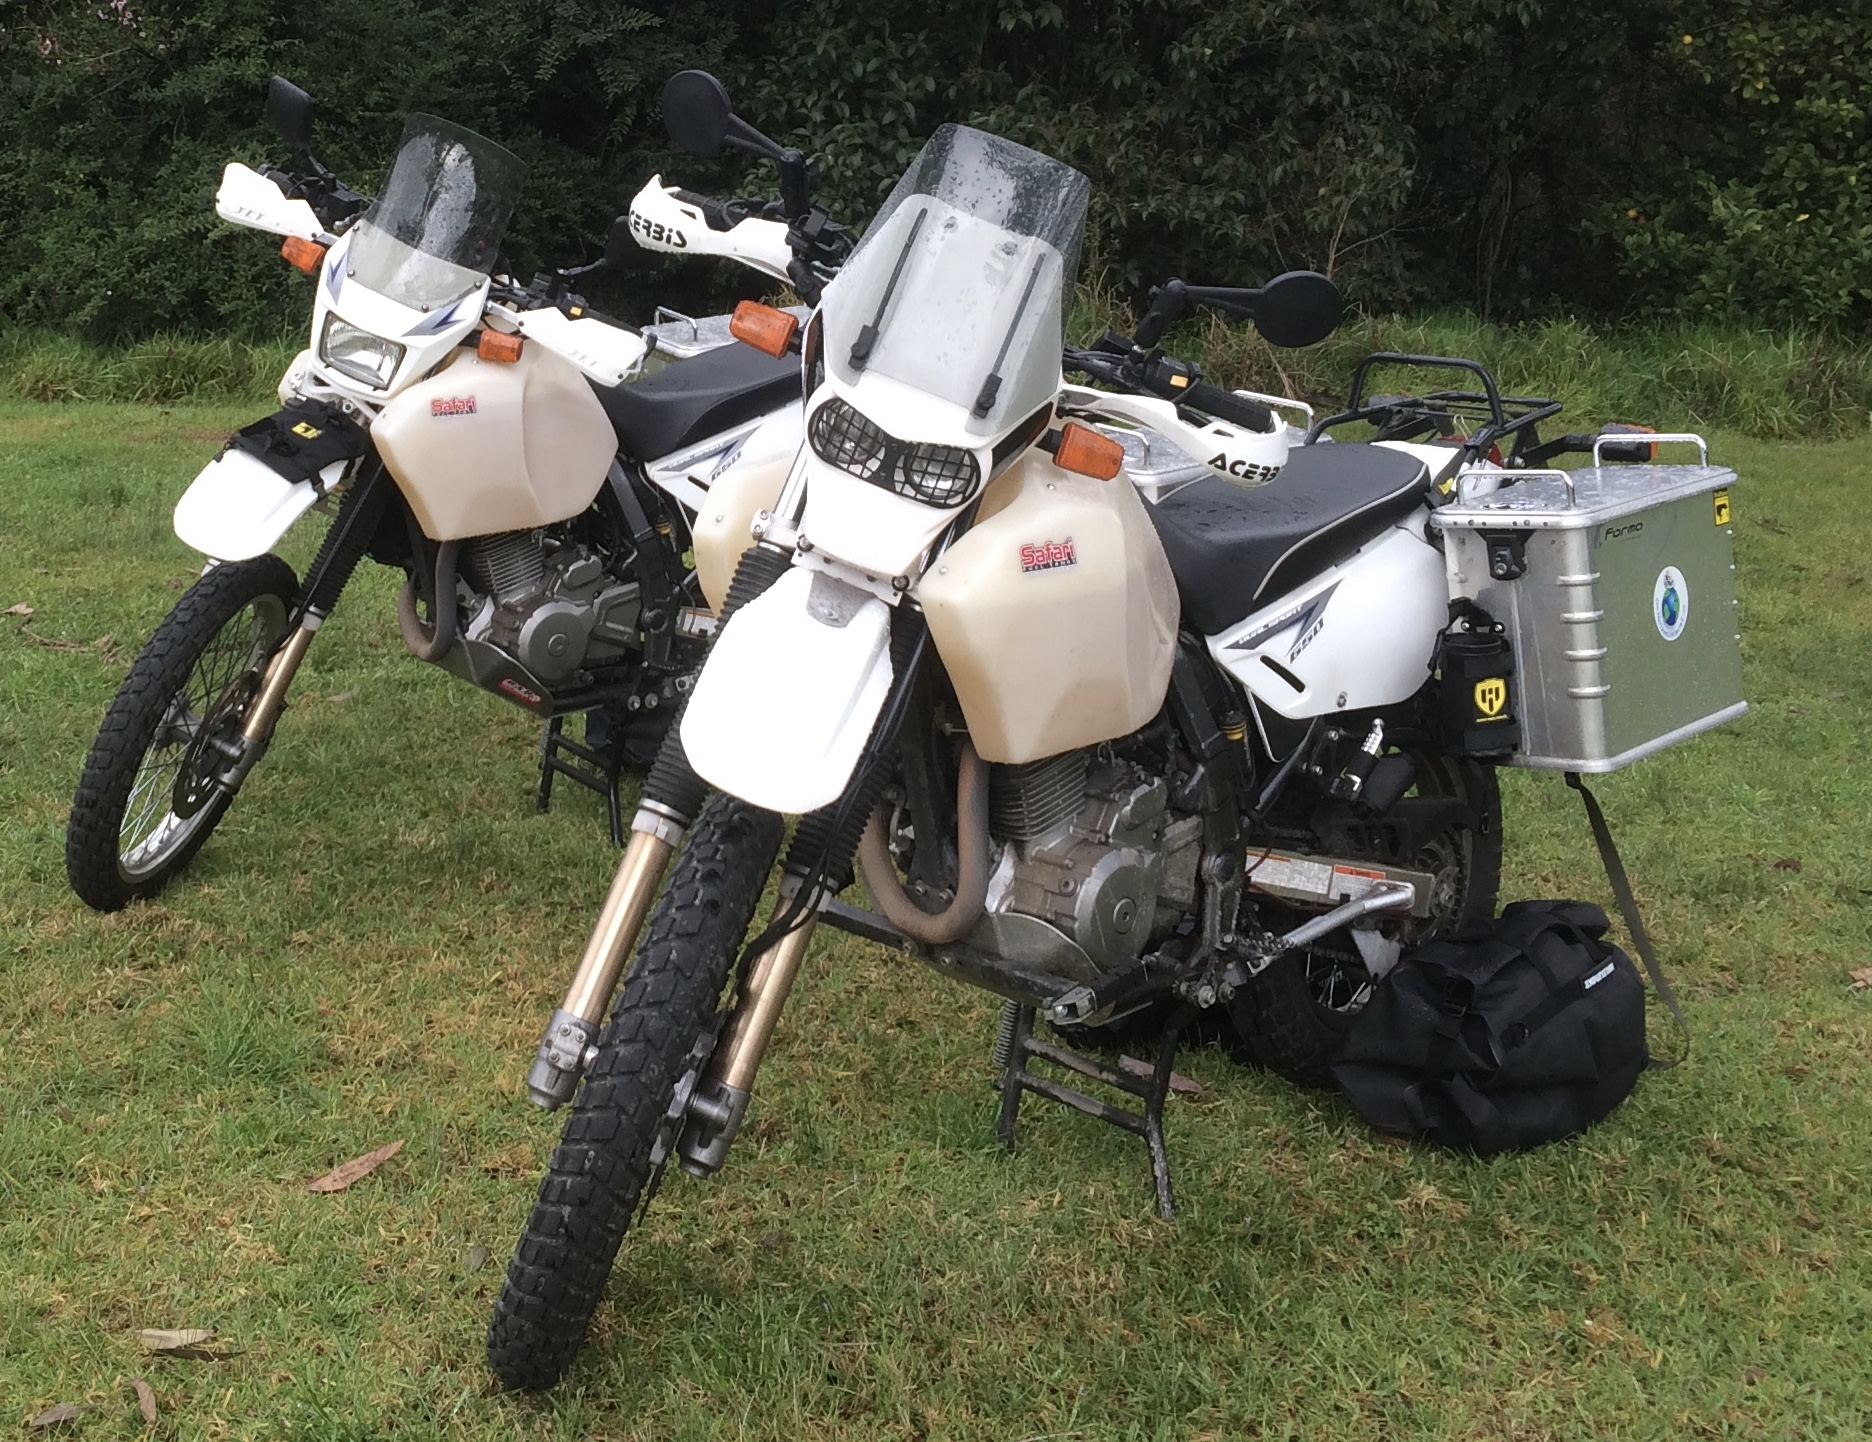 The two DR650's at Wollembi, NSW, Australia